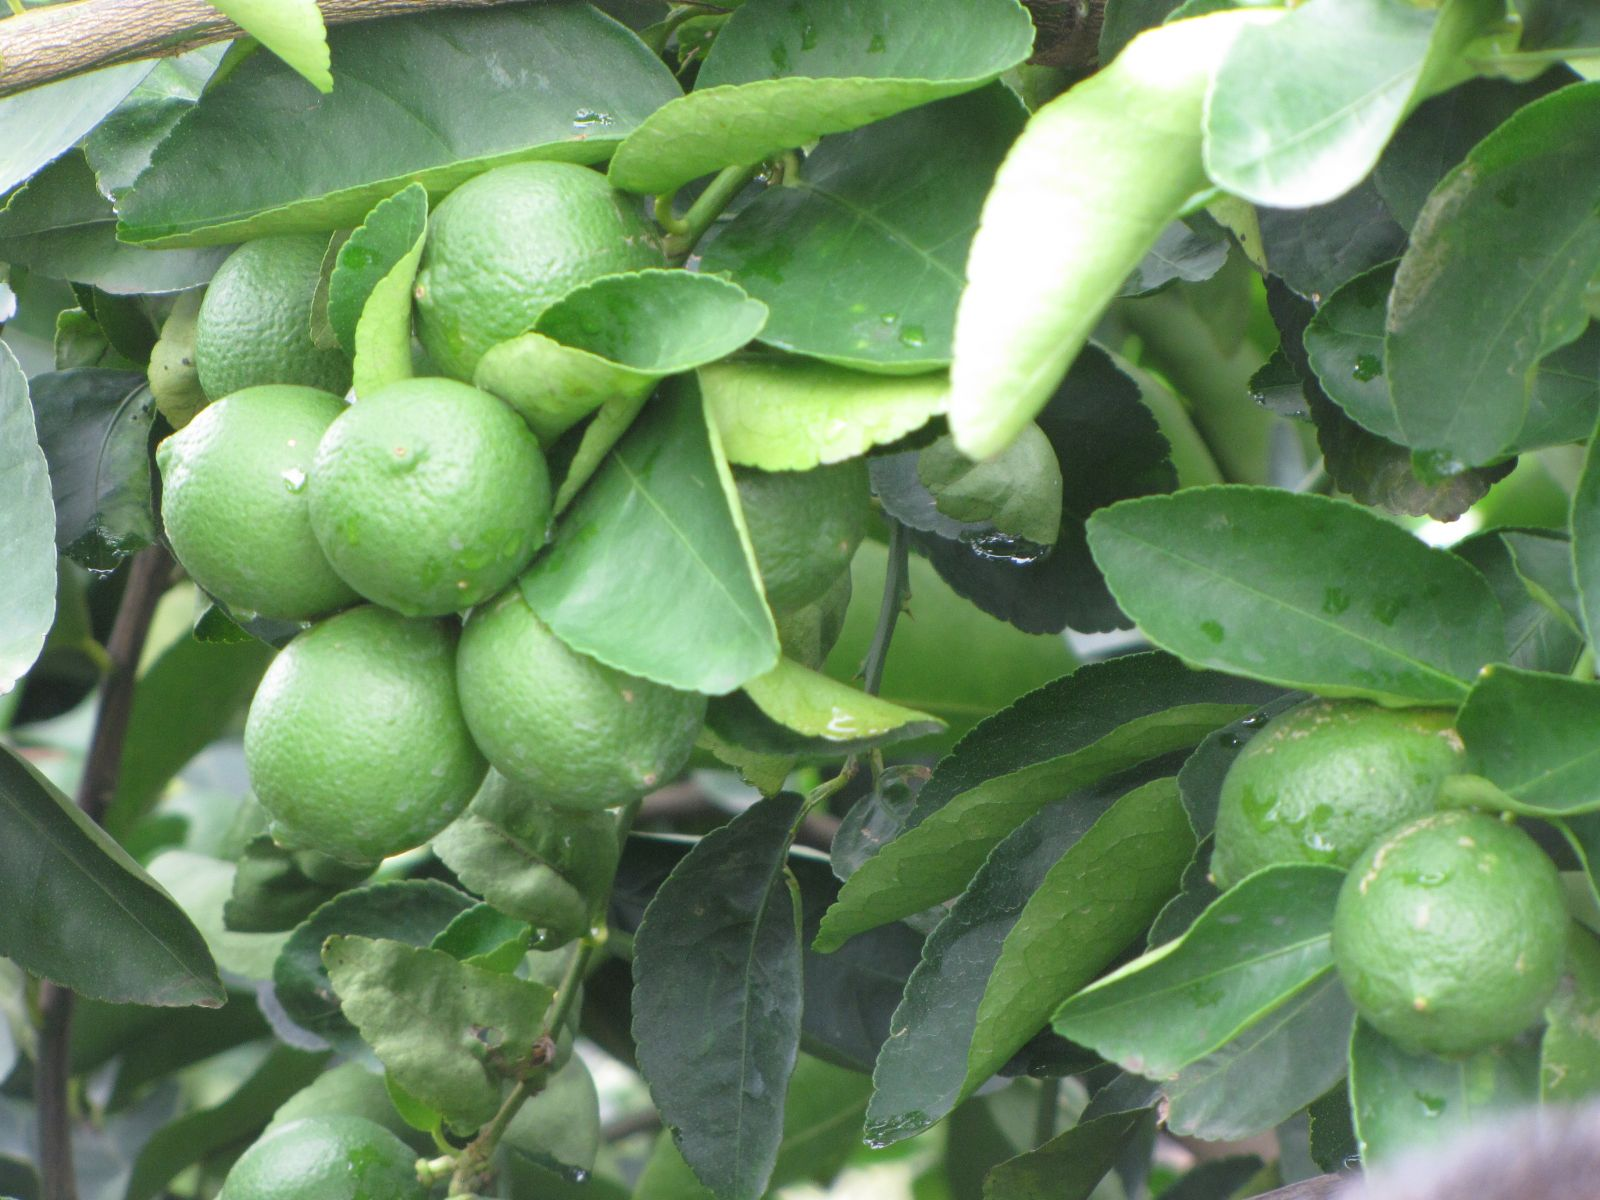 Seedless lemons are one of the products to be promoted in 2020 to enhance the goodwill